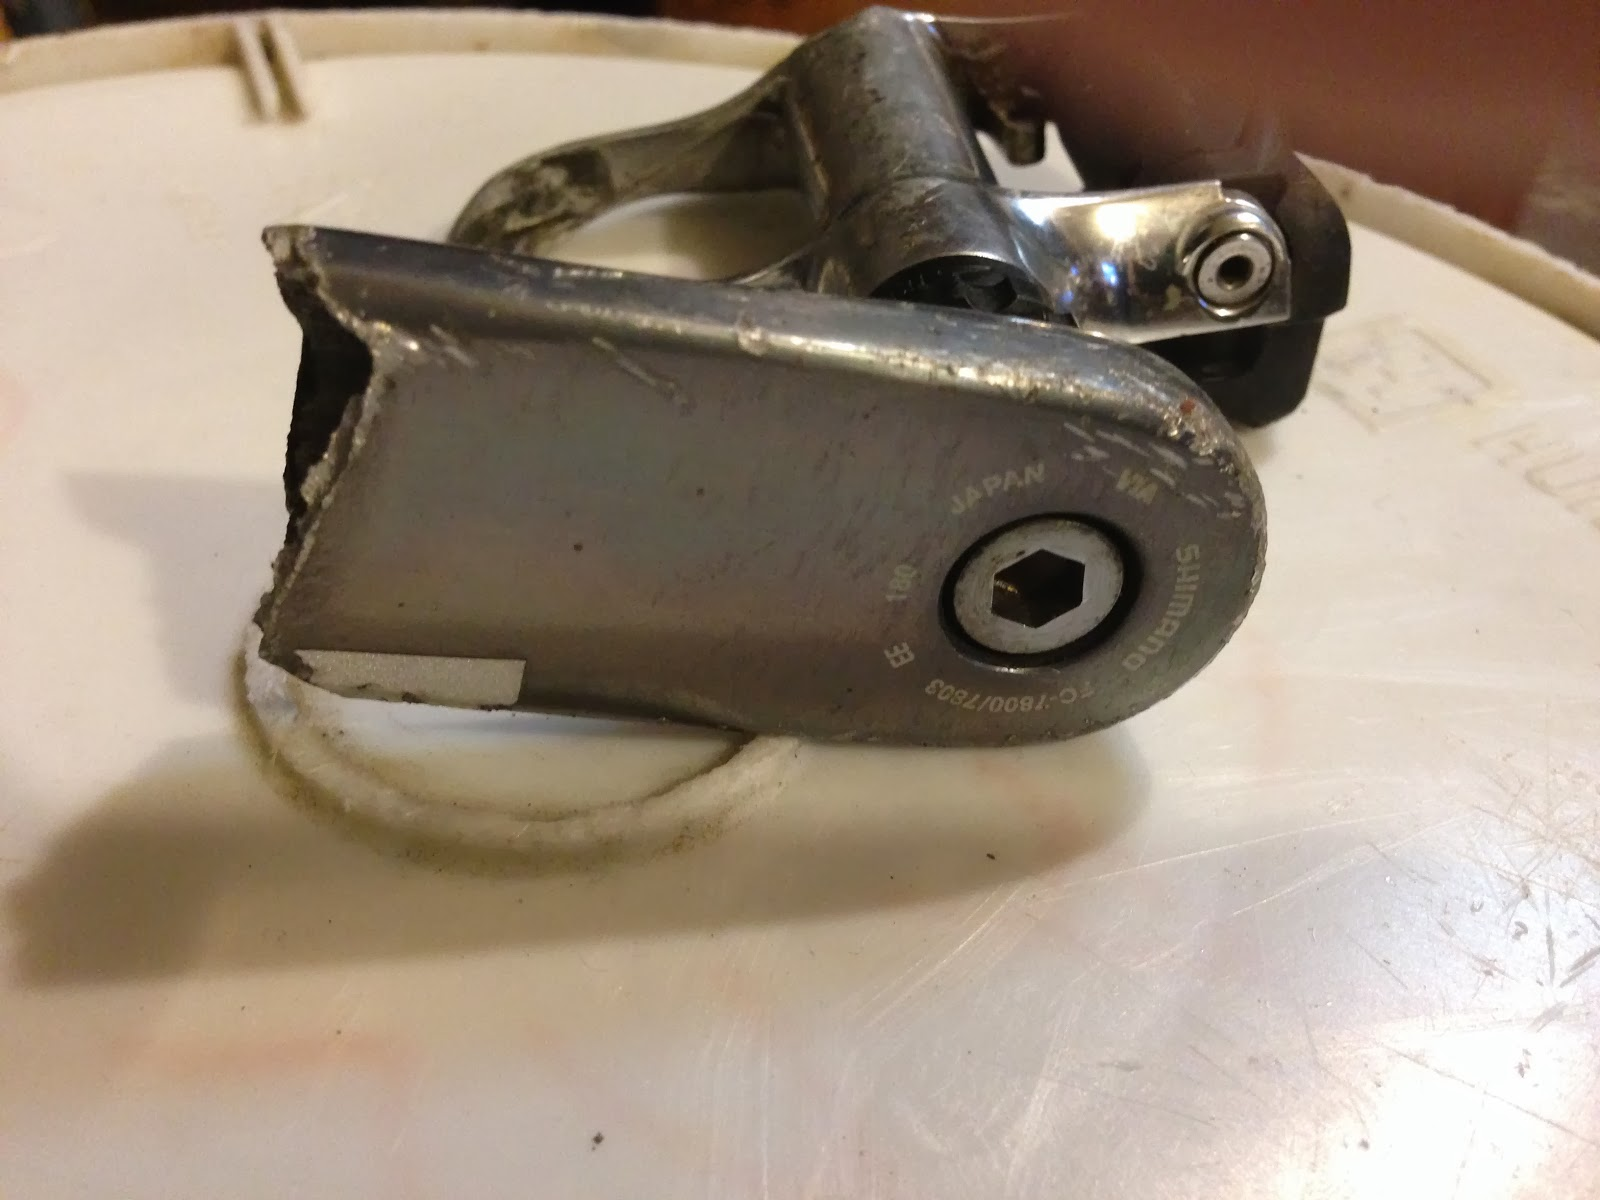 Broken Off Crank Arm with Pedal